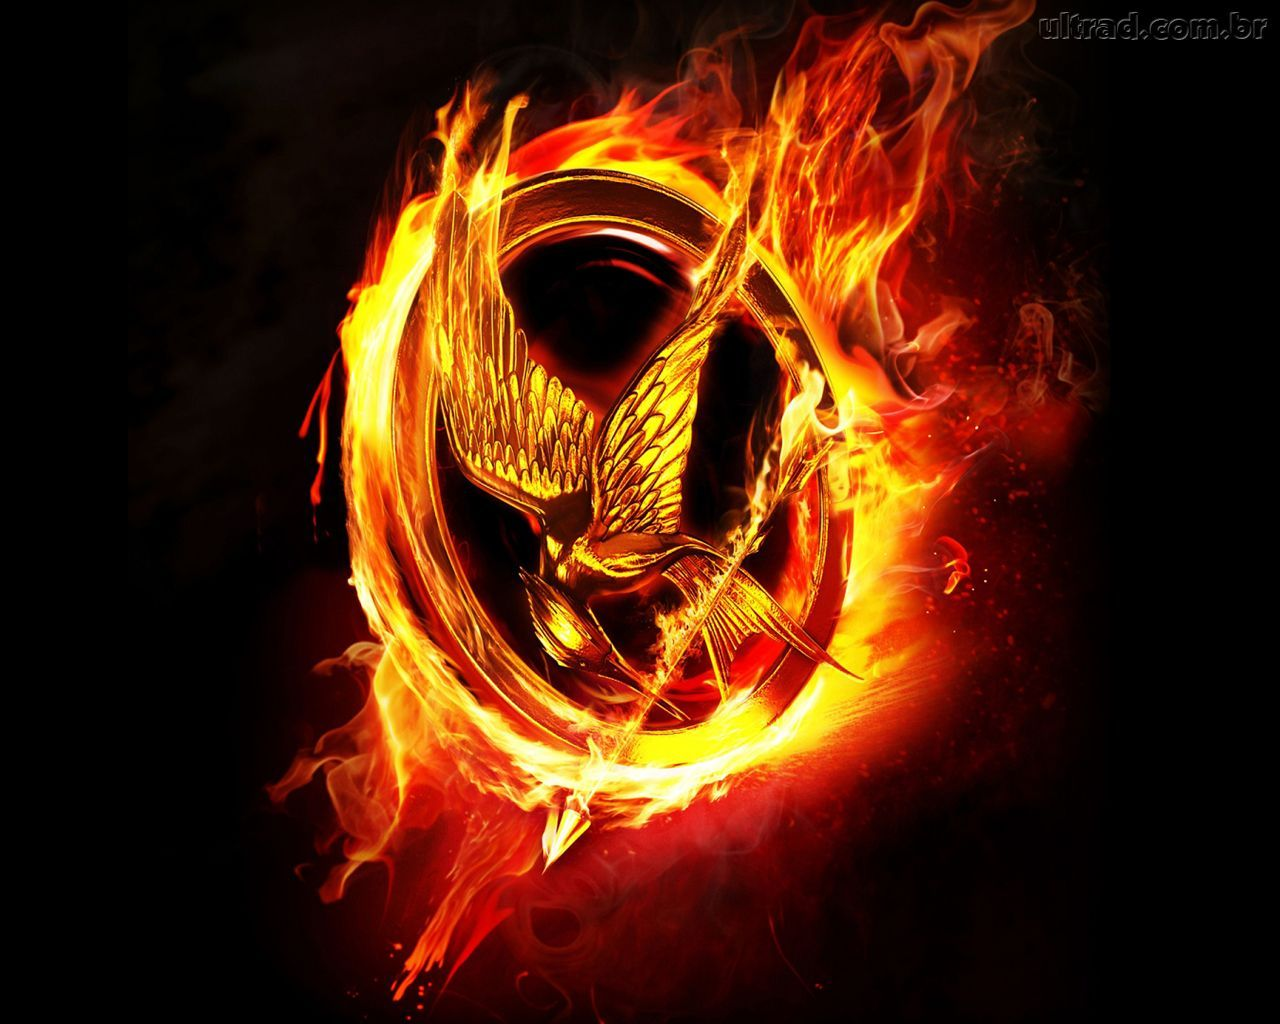 Moving Fire Hunger Games Mockingjay Pin